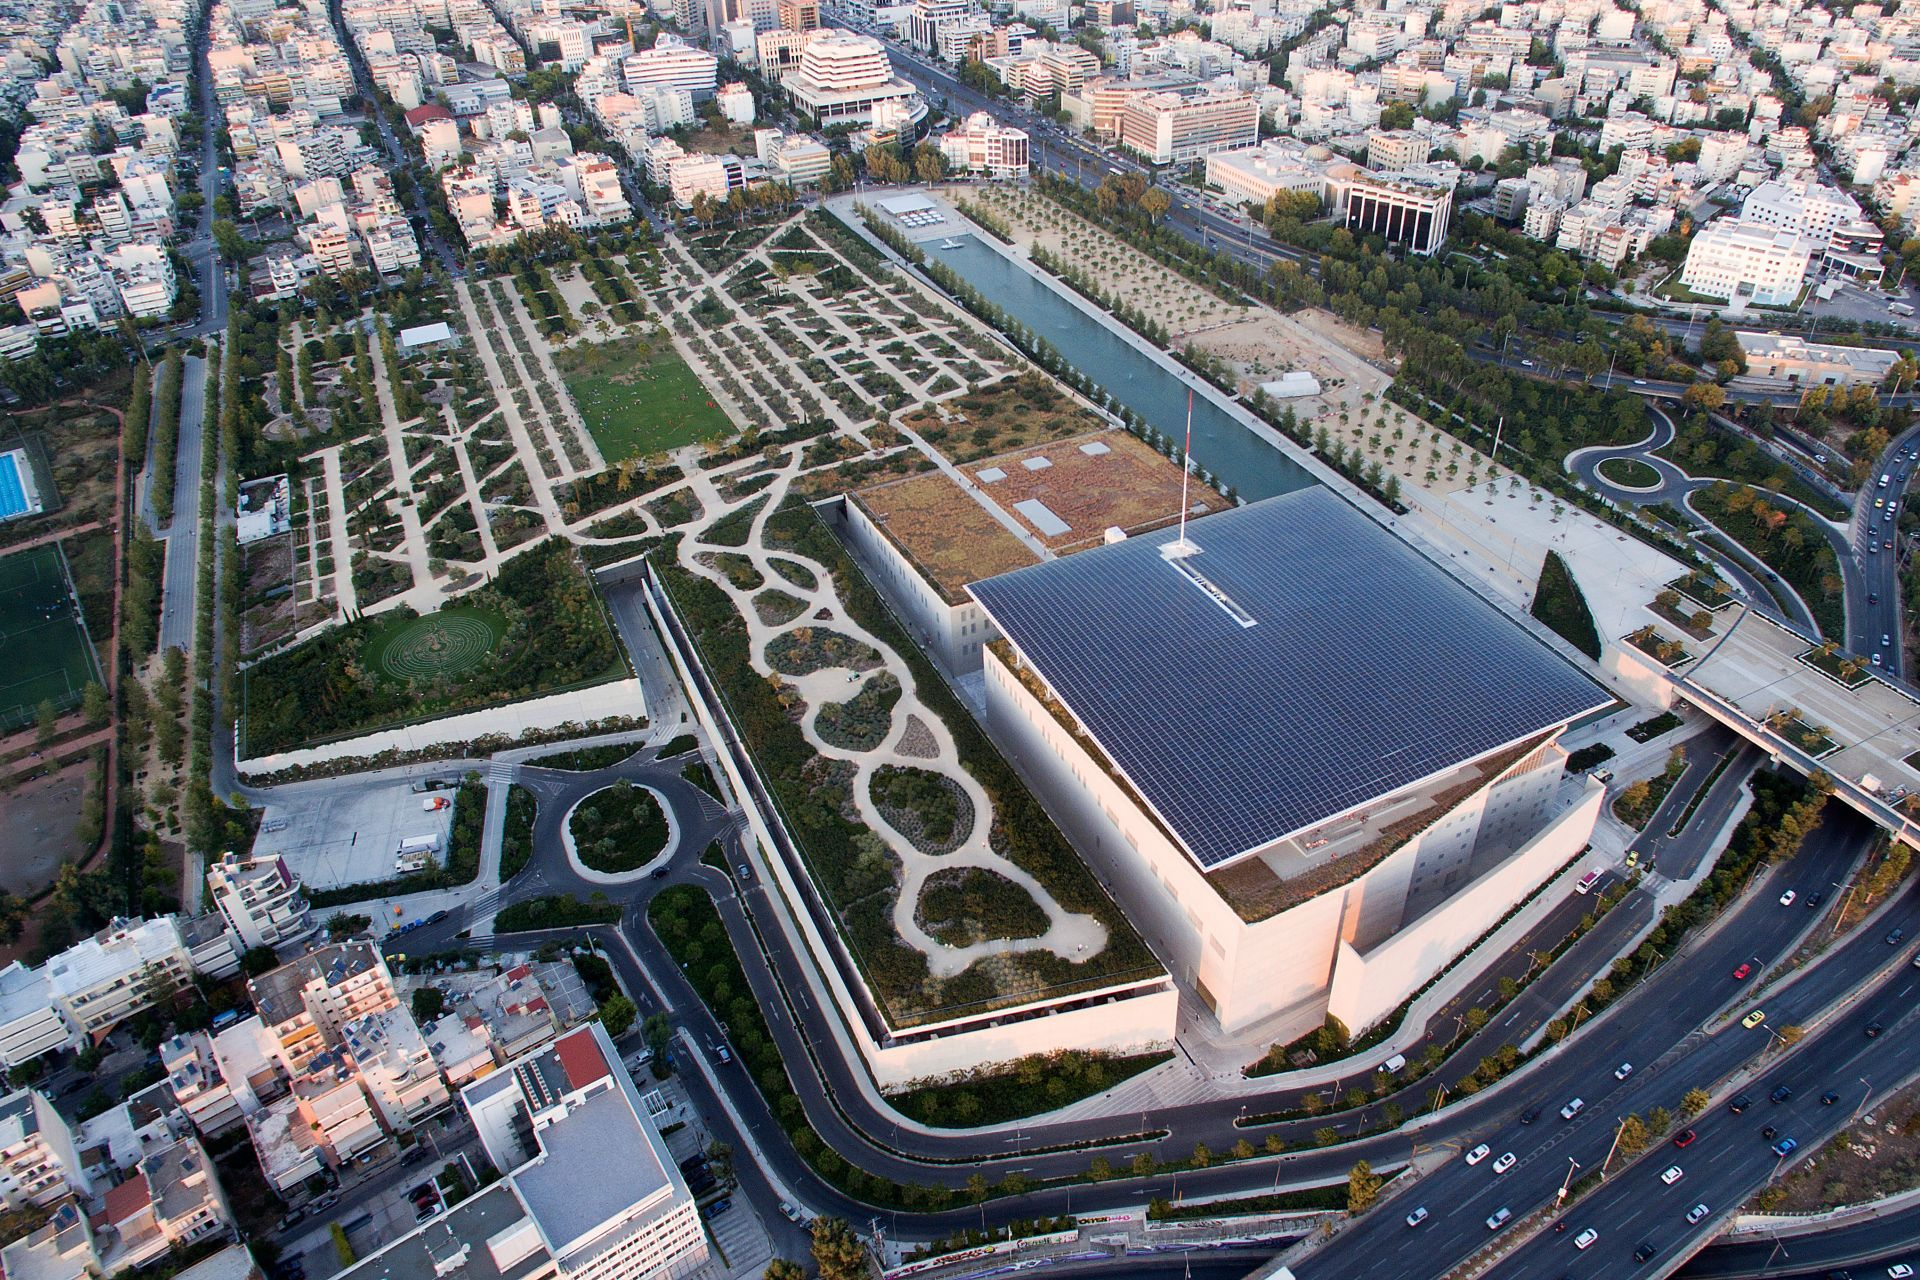 The Stavros Niarchos Foundation Cultural Center from above